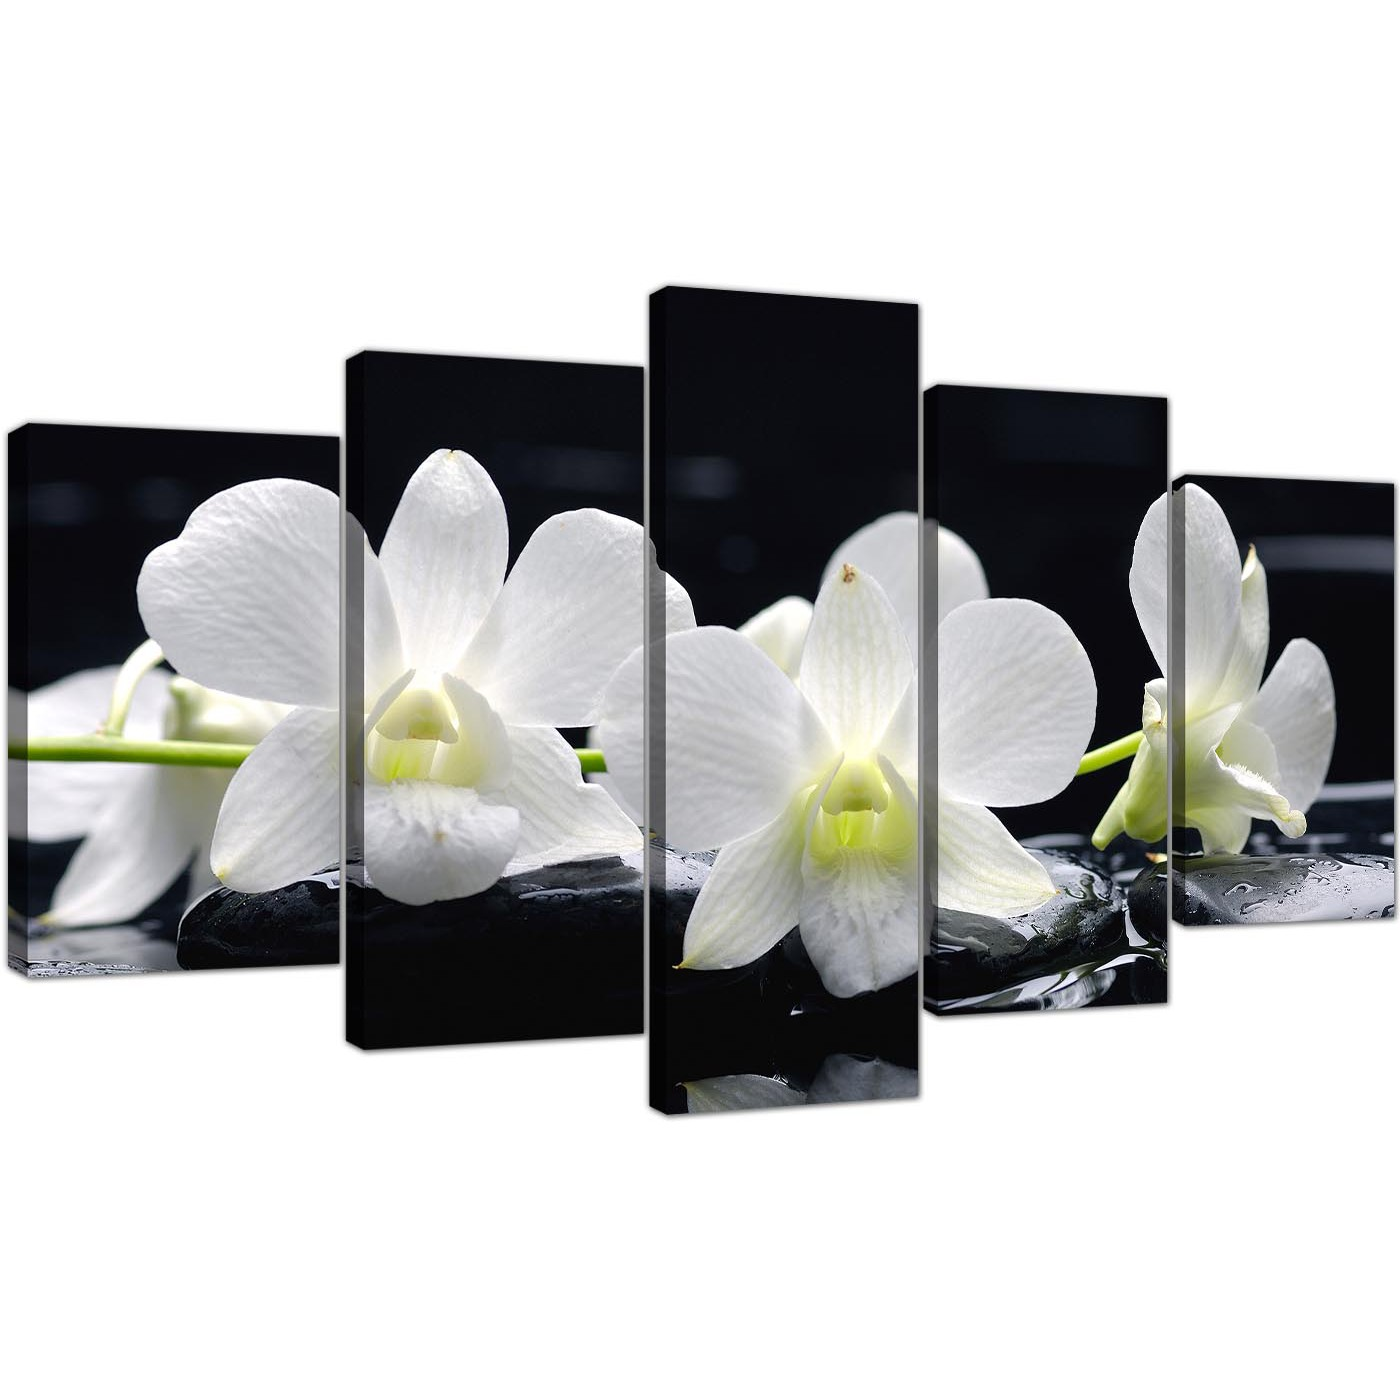 extra large orchids canvas art  panel in black  white - blackwhite living room five part set of lily display gallery item